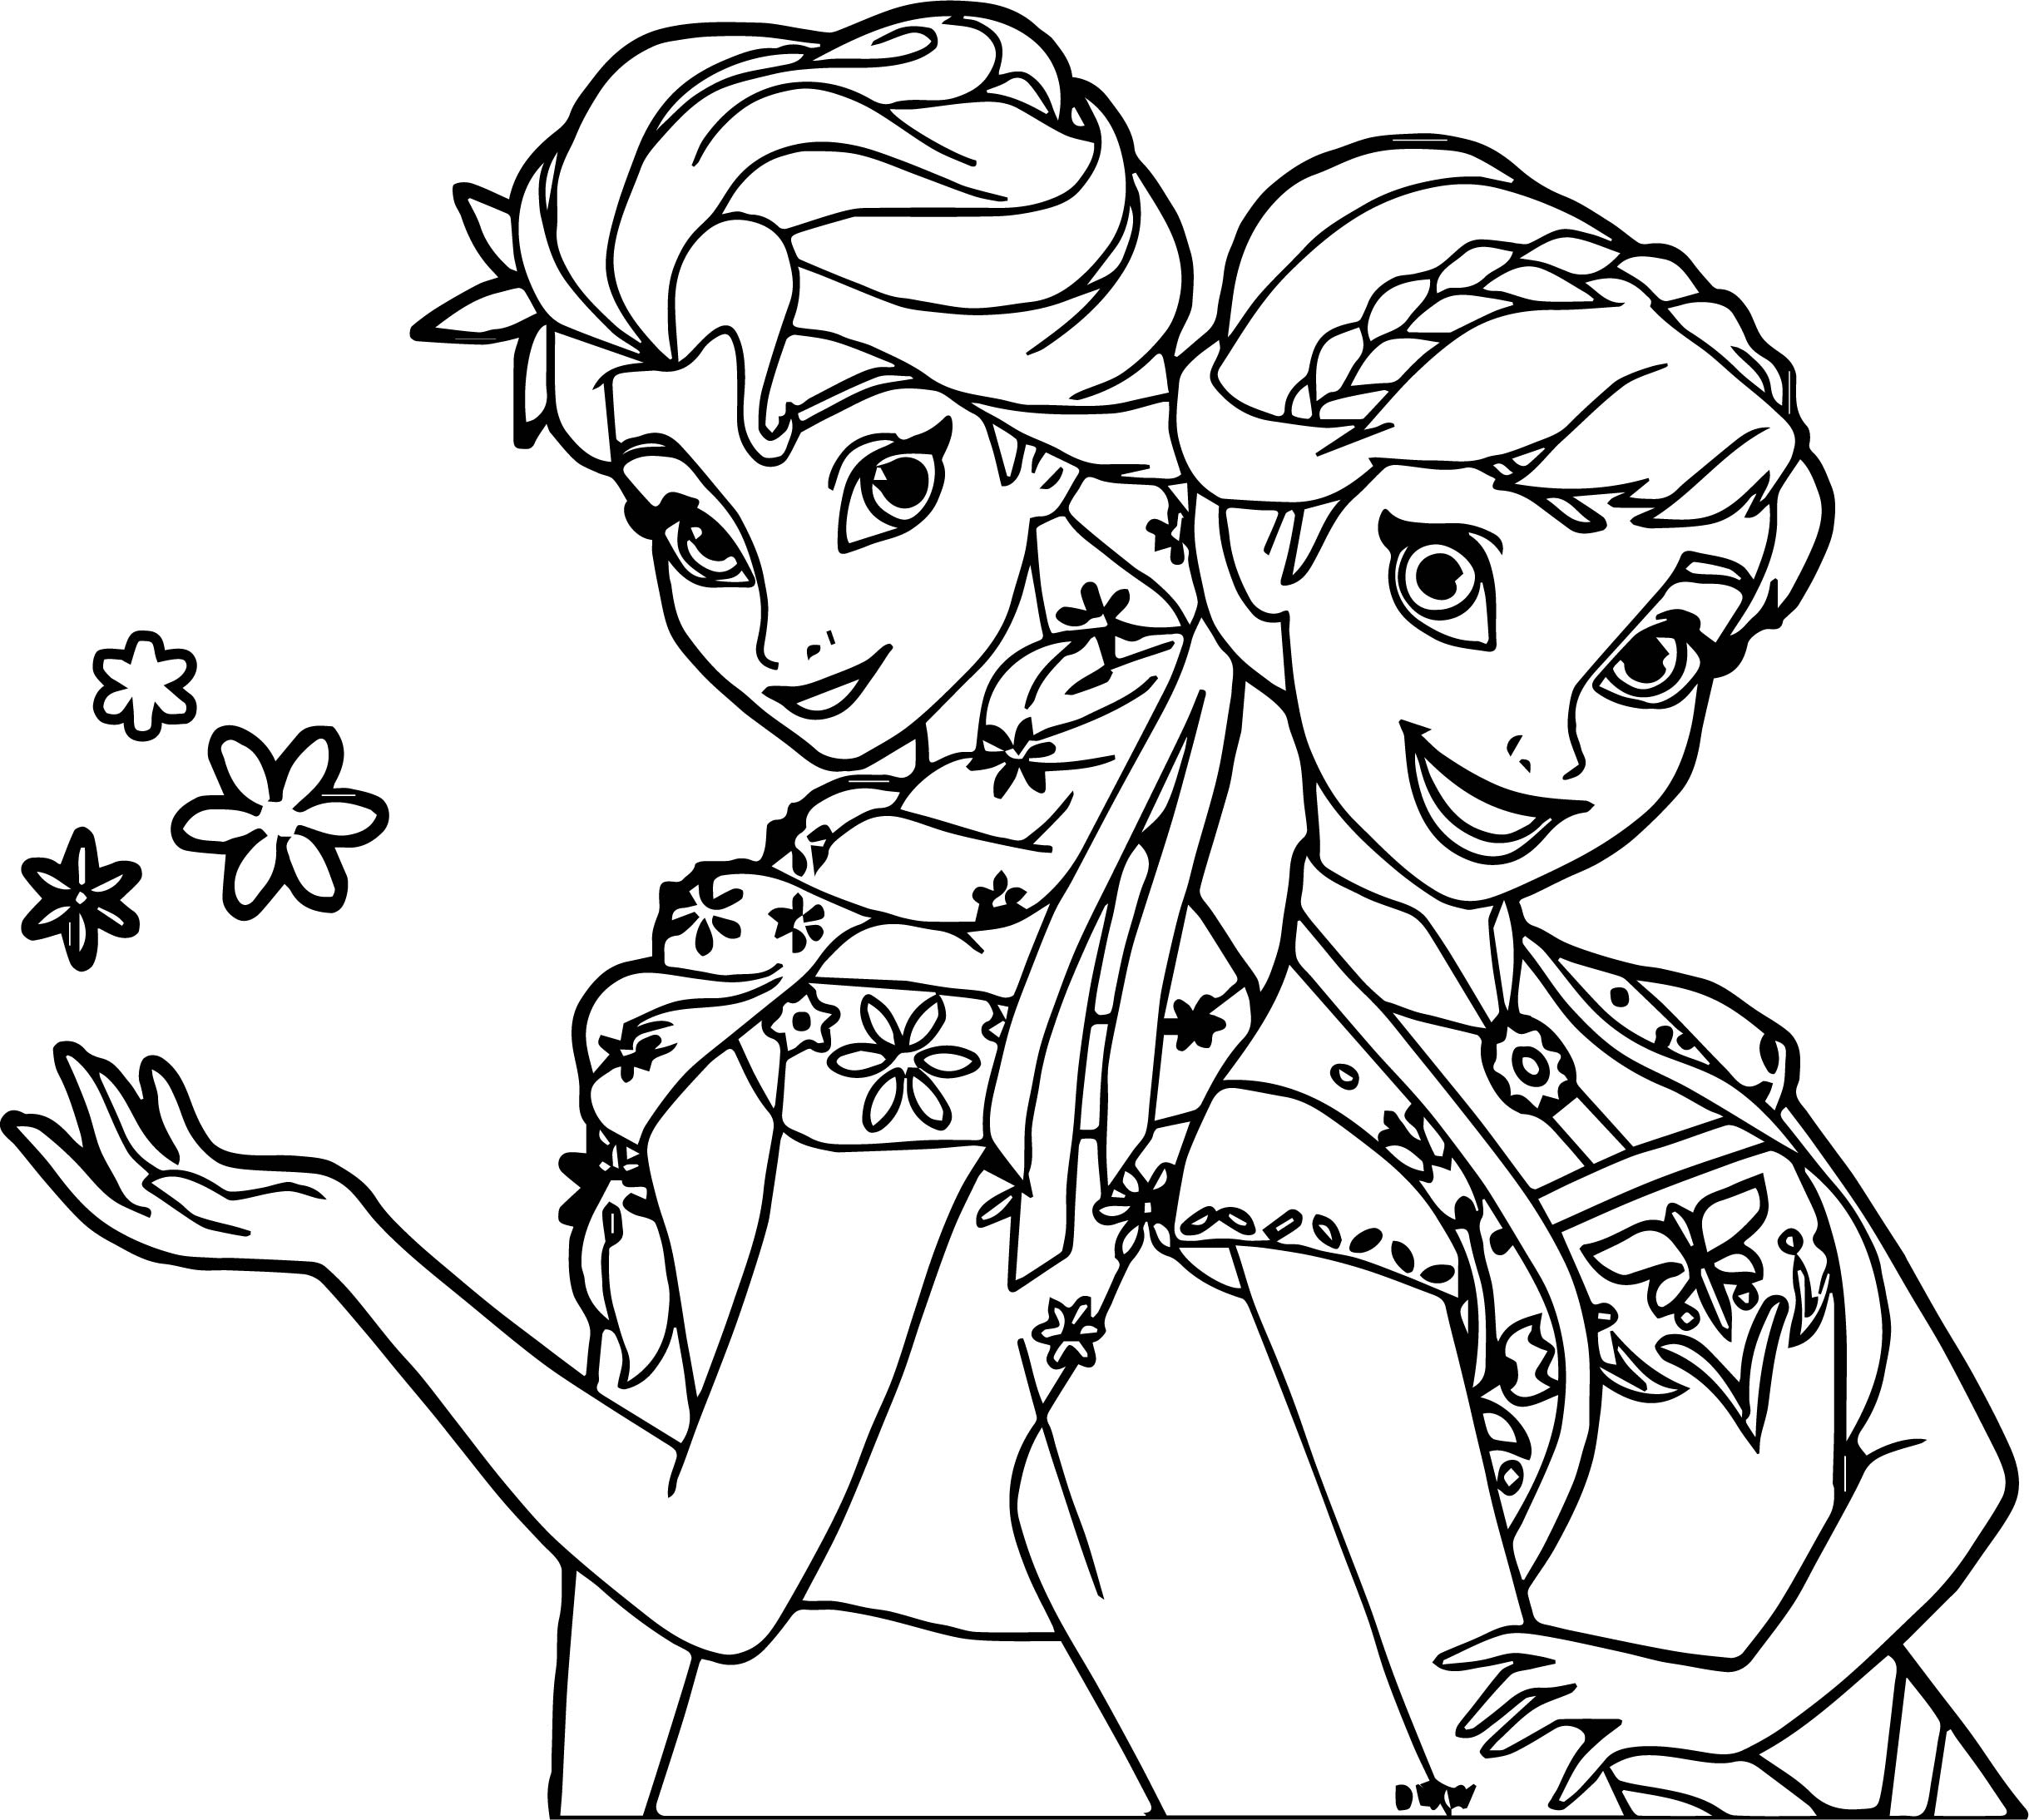 frozen fever and anna snow coloring page - Frozen Fever Coloring Pages